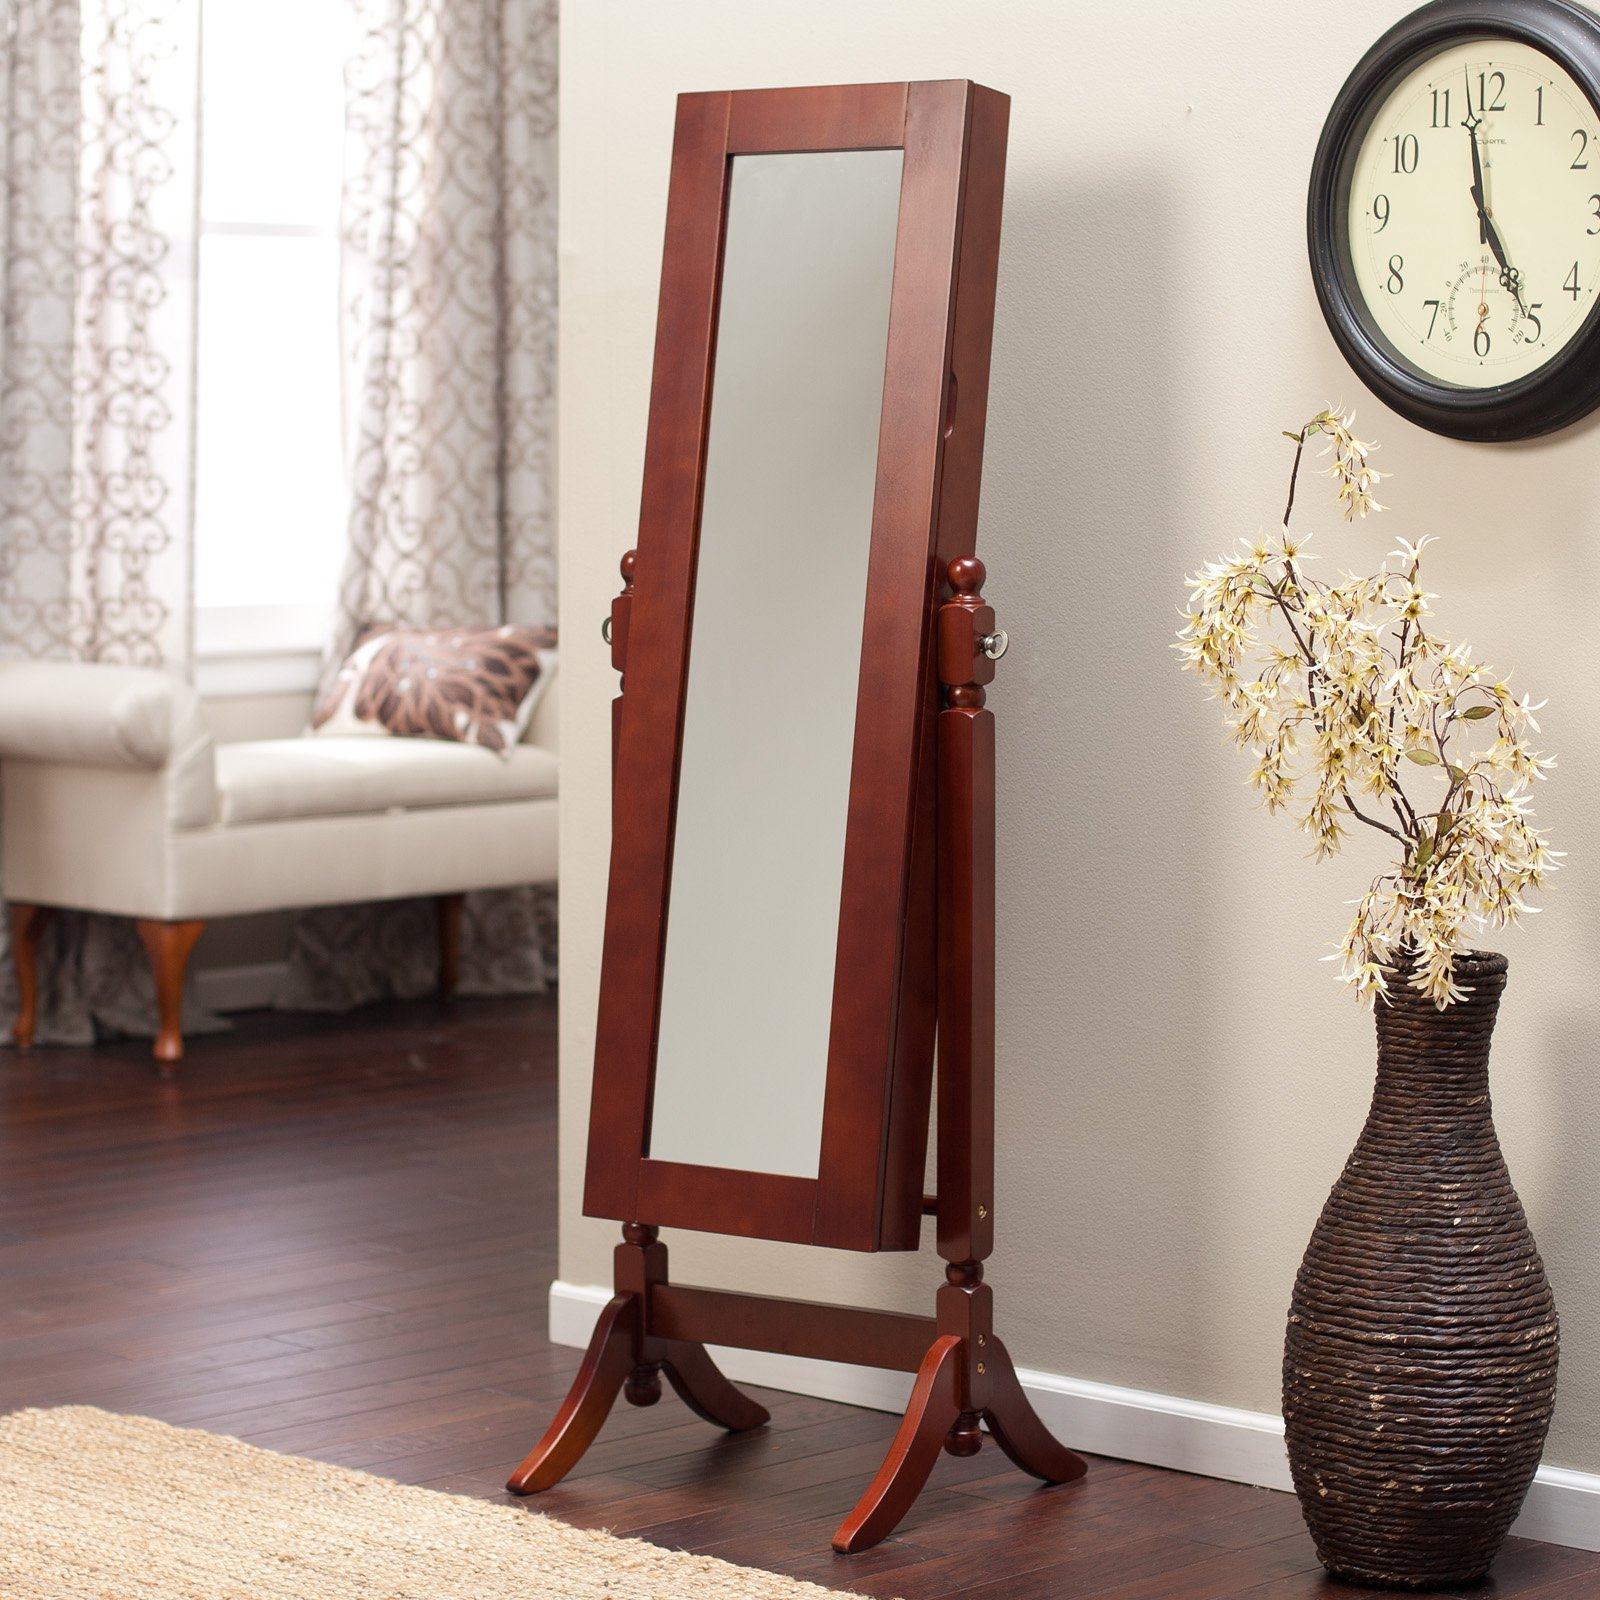 Heritage Jewelry Armoire Cheval Mirror Cherry Walmartcom